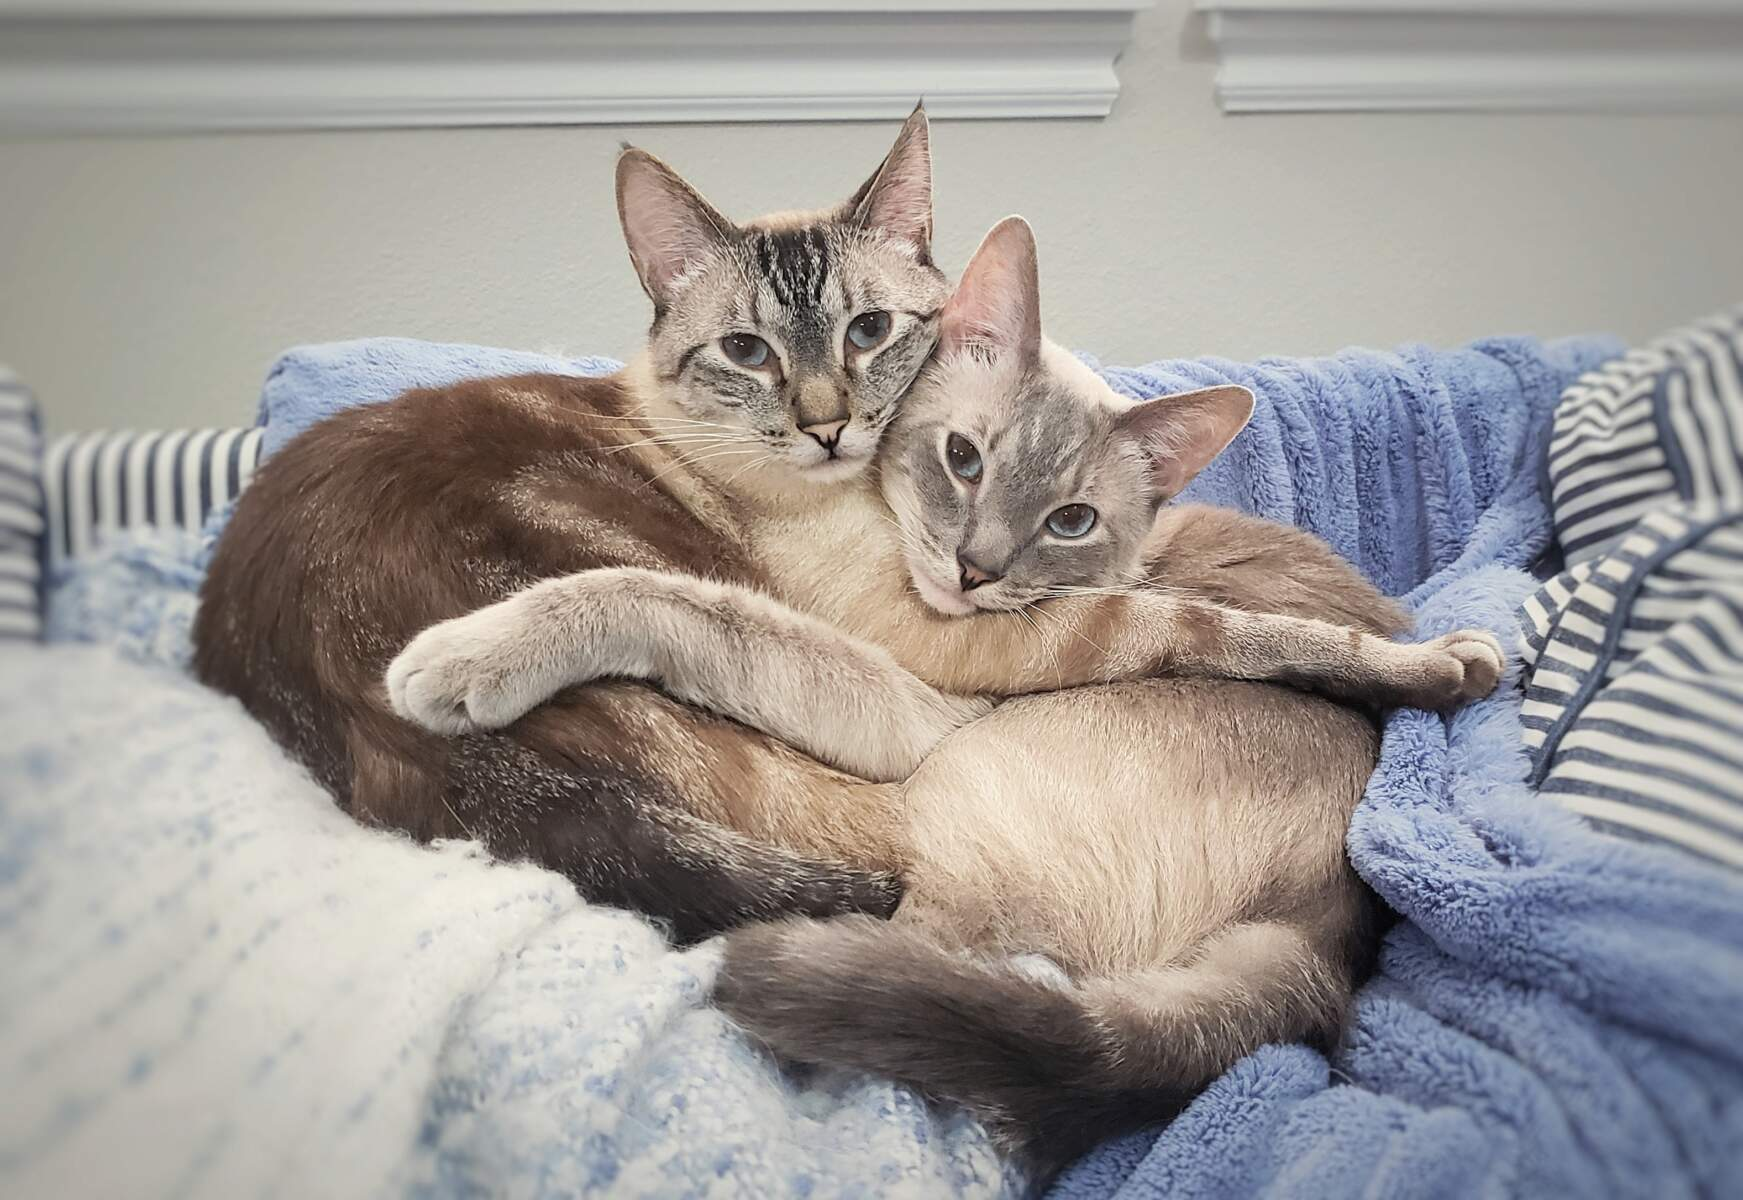 Willy and Simba relax together on the sofa.